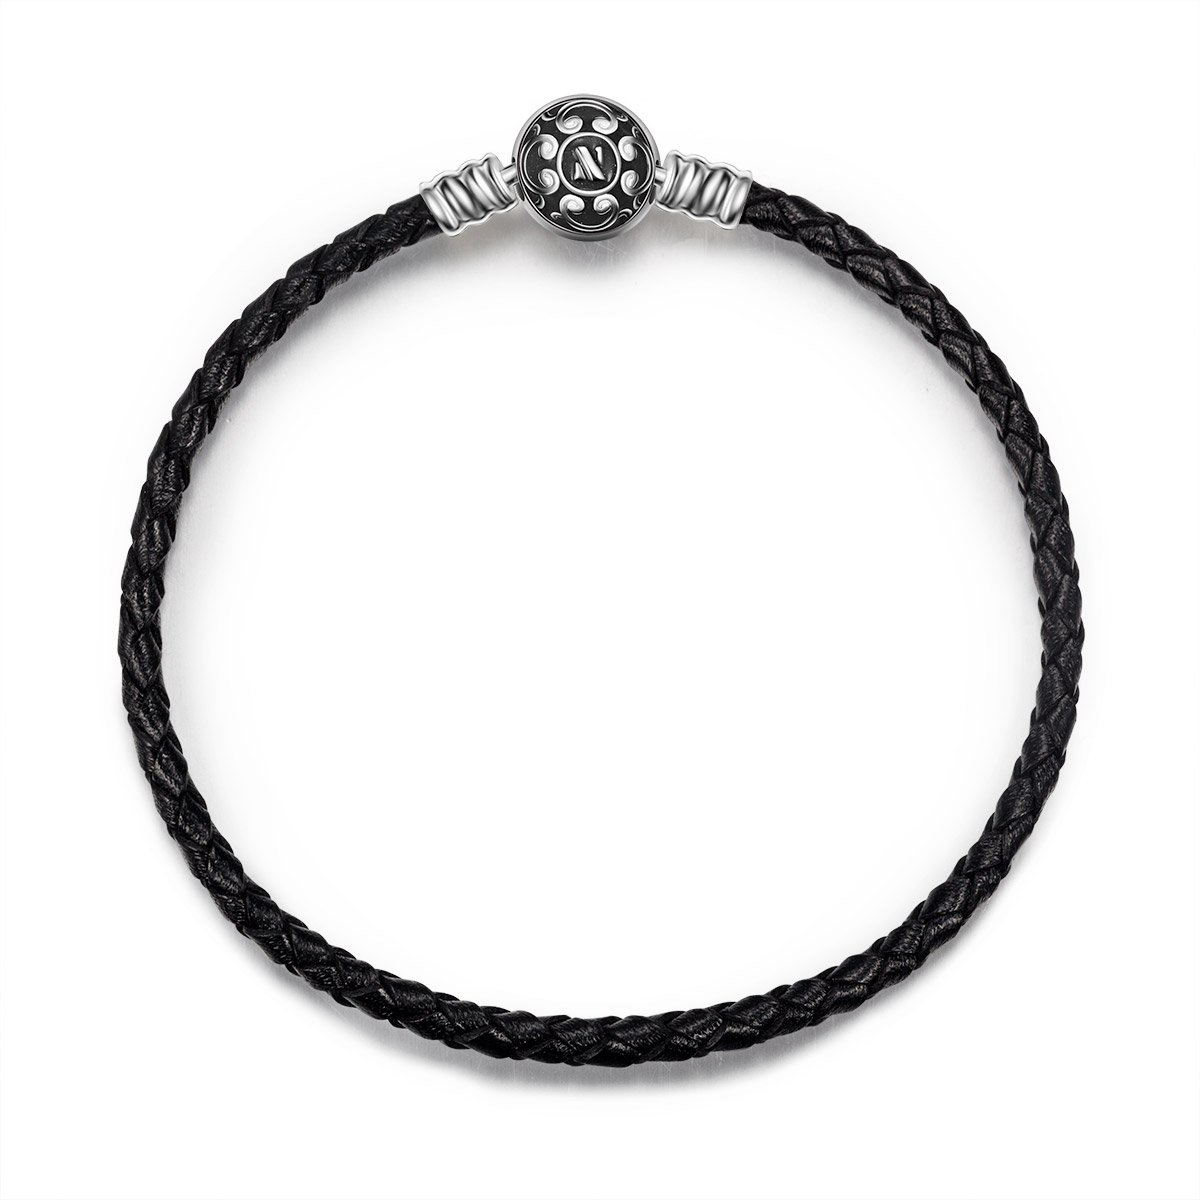 NINAQUEEN 7.5'' Black Genuine Leather Bracelet with 925 Sterling Silver Snap Clasp Charms, Birthday Anniversary Graduation Gifts for Her Wife Teen Girls Women DIY Bracelets for Charms